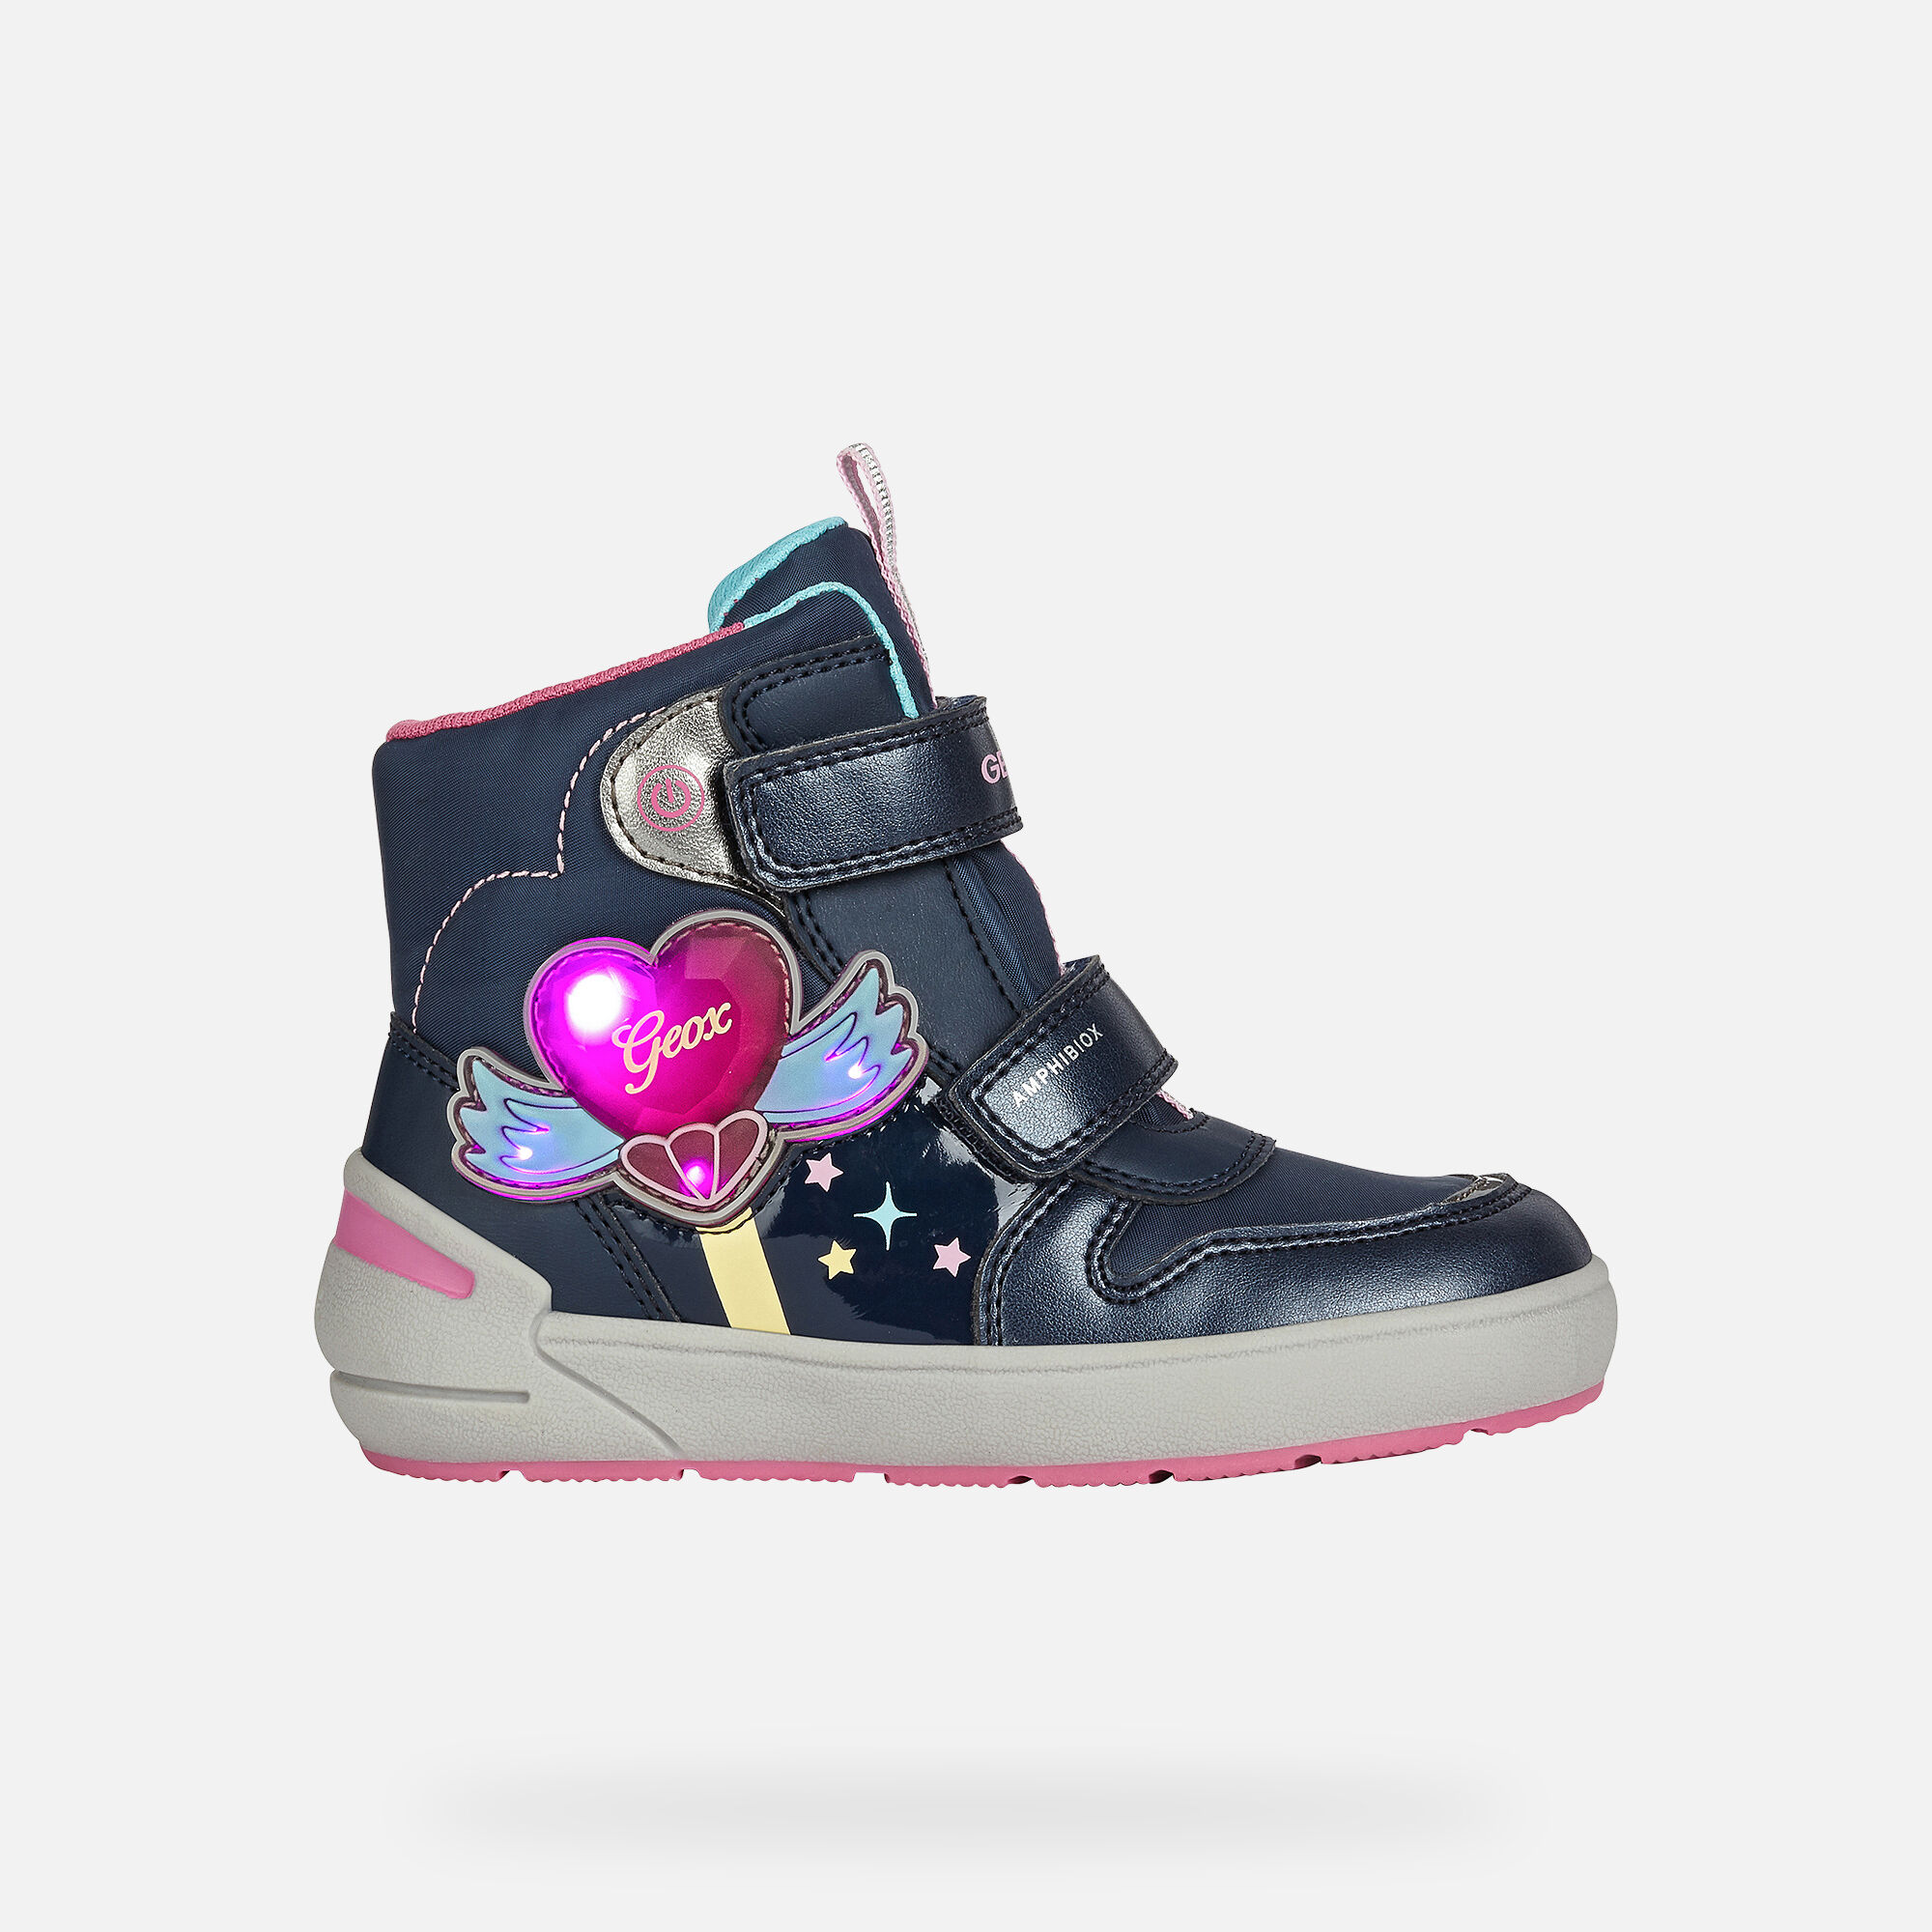 SLEIGH ABX GIRL - LIGHT-UP SHOES from